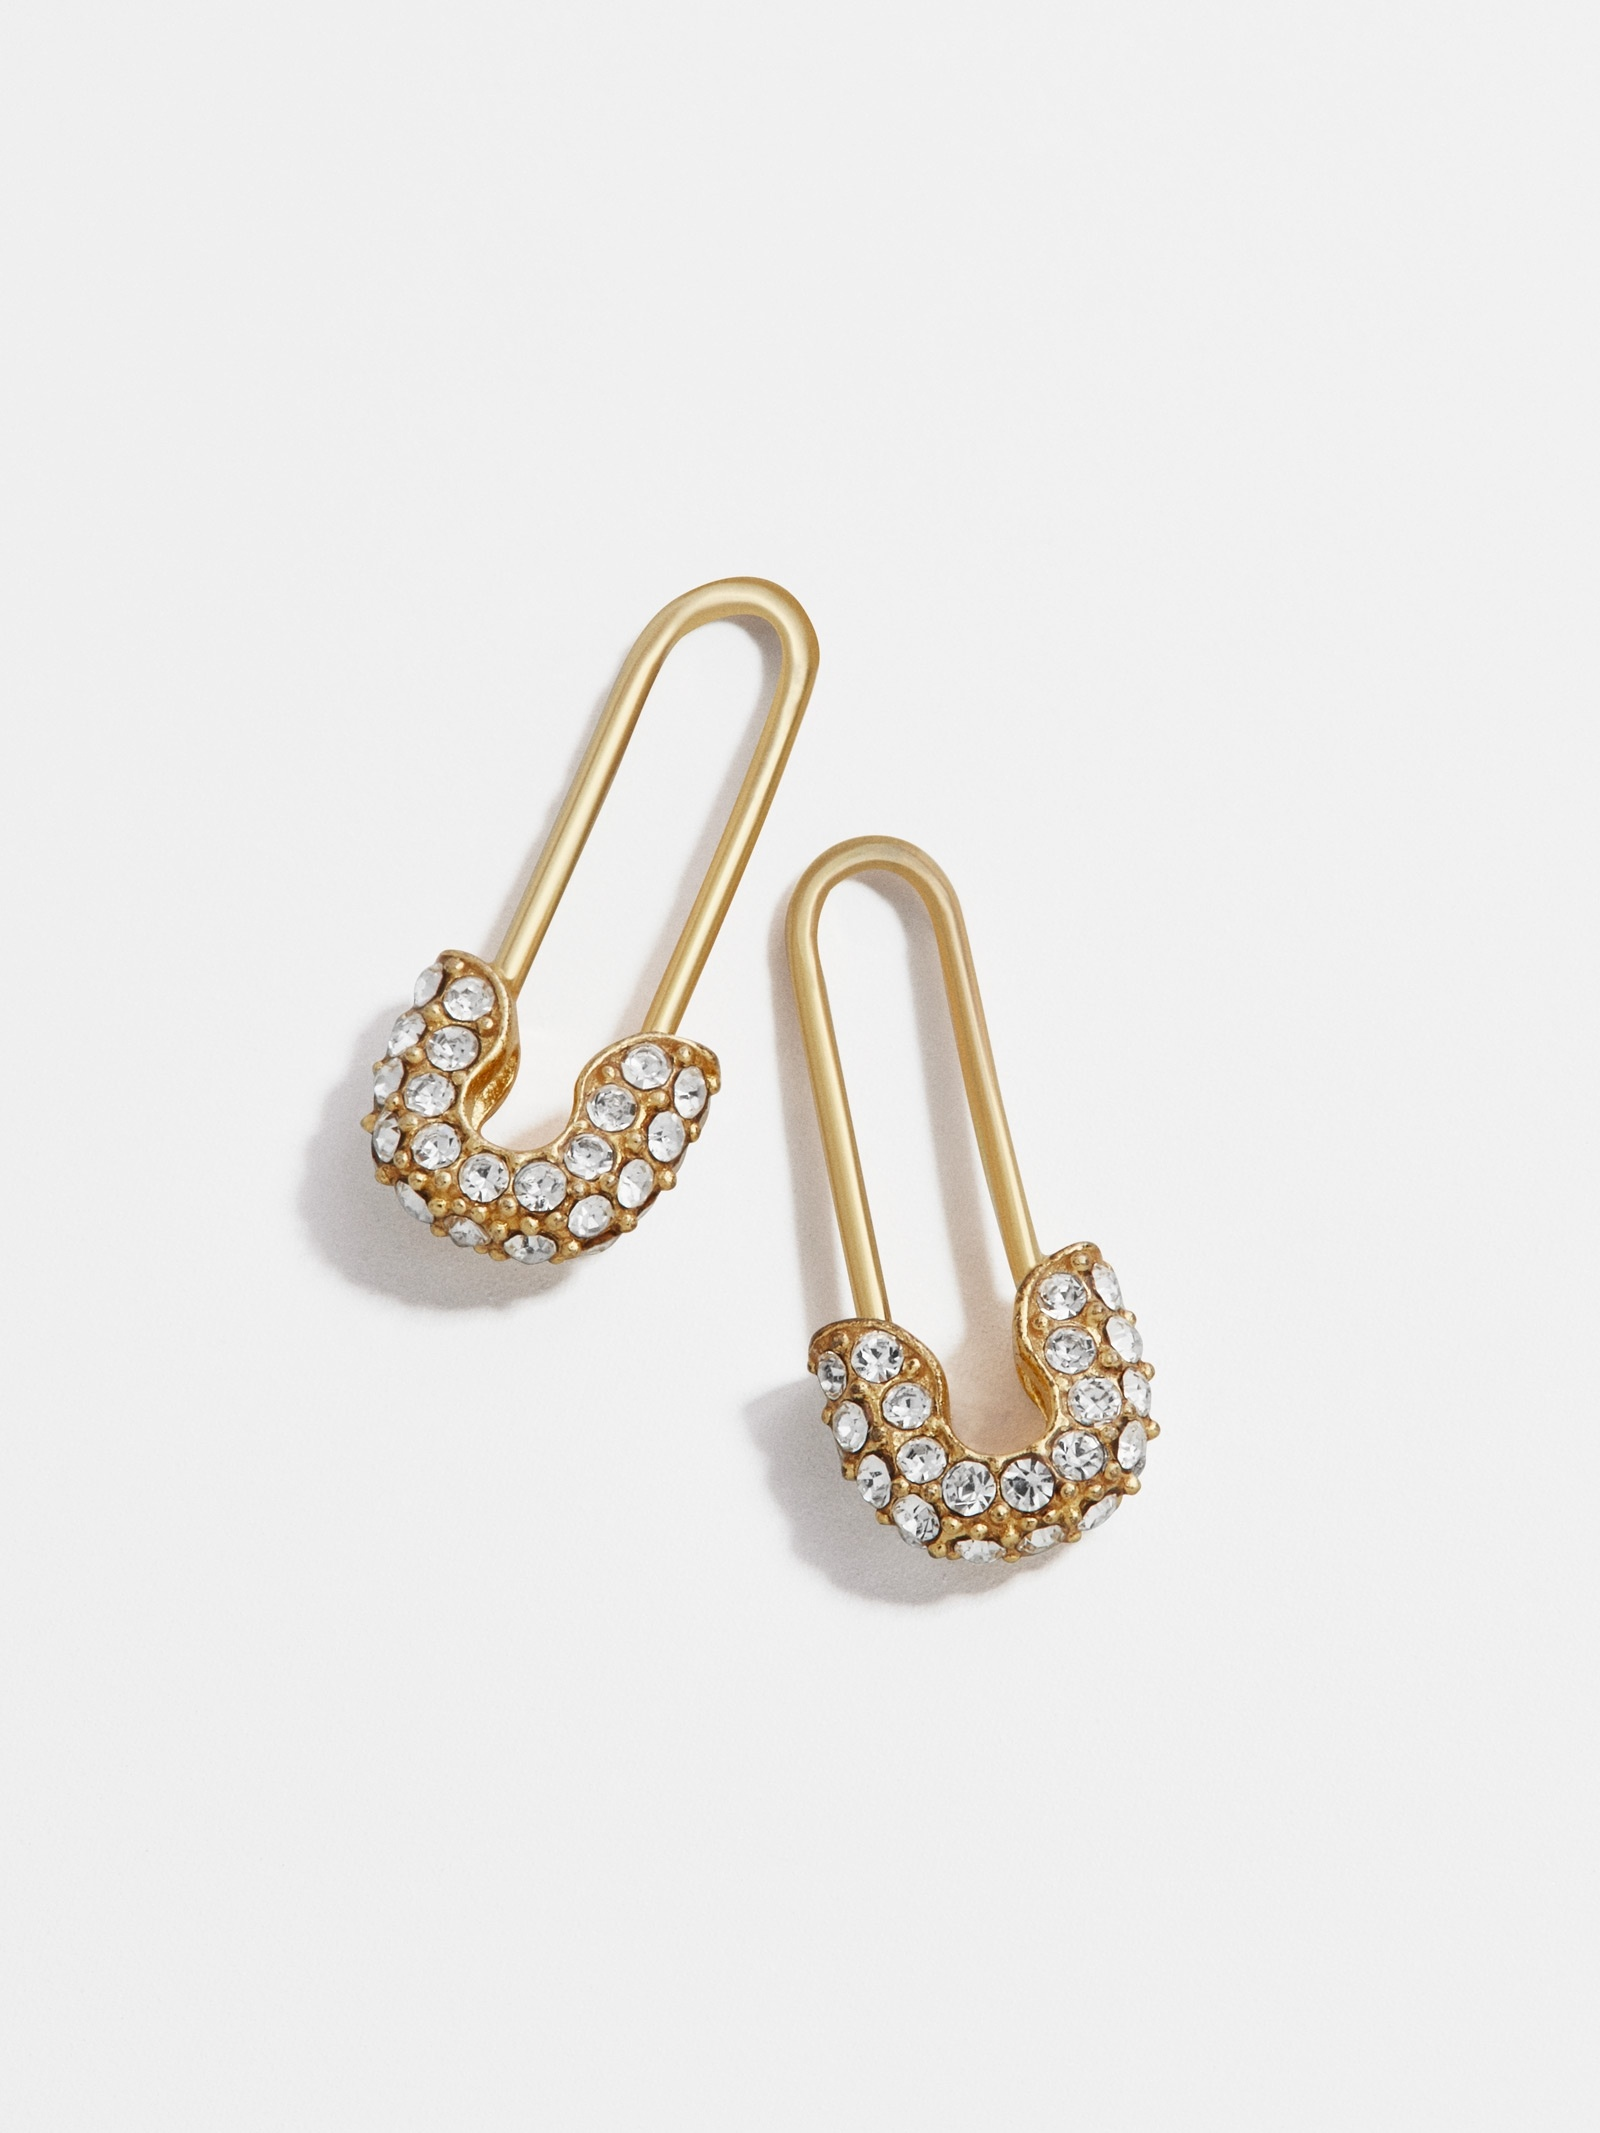 Charmian 18 K Gold Vermeil Drop Earrings by Baublebar